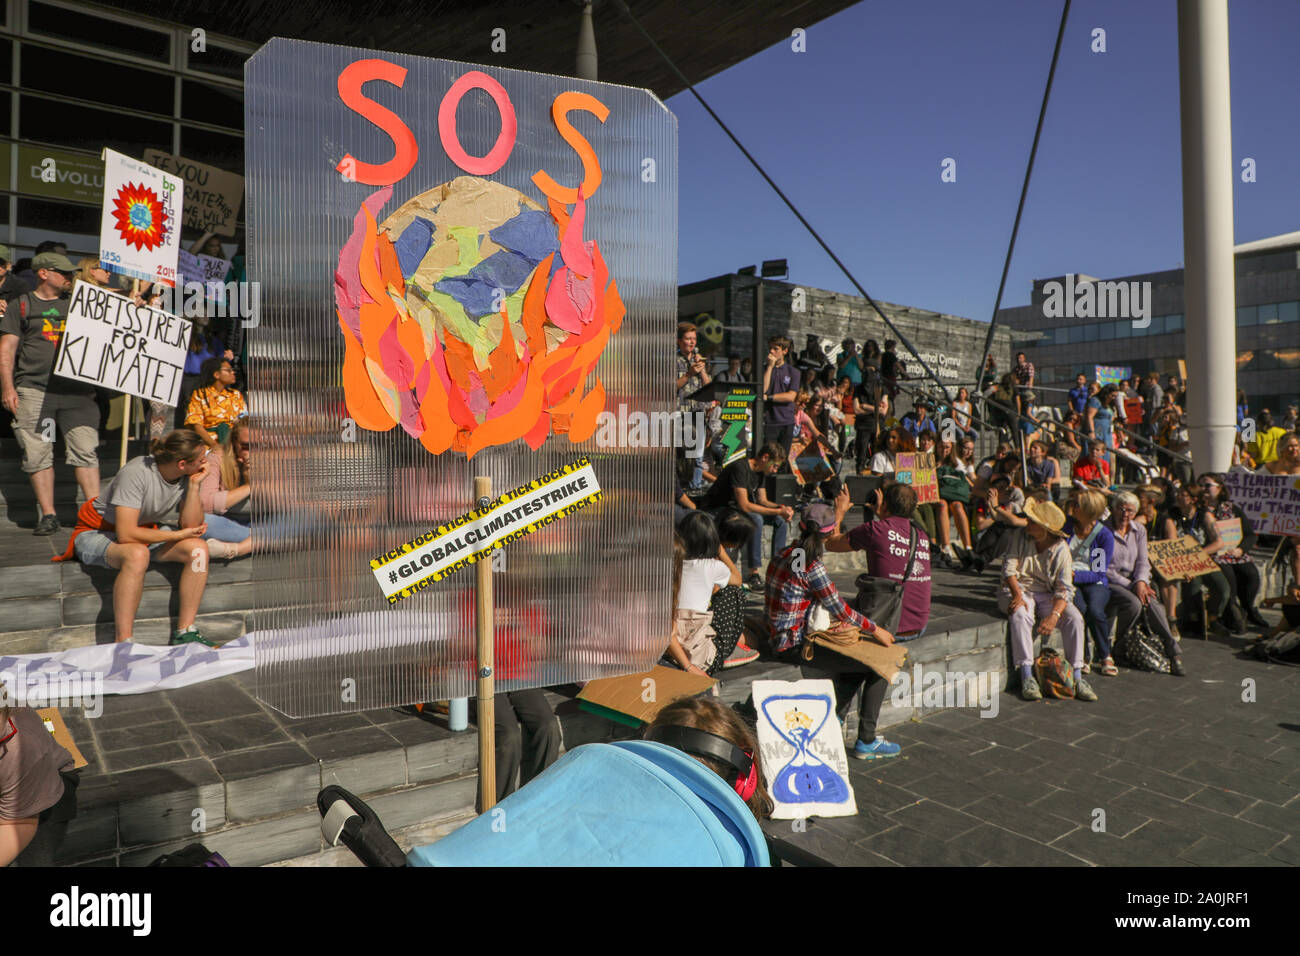 Welsh Senedd, Cardiff, Wales, UK.20th September 2019. Protesters take part in the Global Climate Strike in front of the Welsh Senedd in Cardiff Bay, Wales. Credit: Haydn Denman/Alamy Live News. Stock Photo